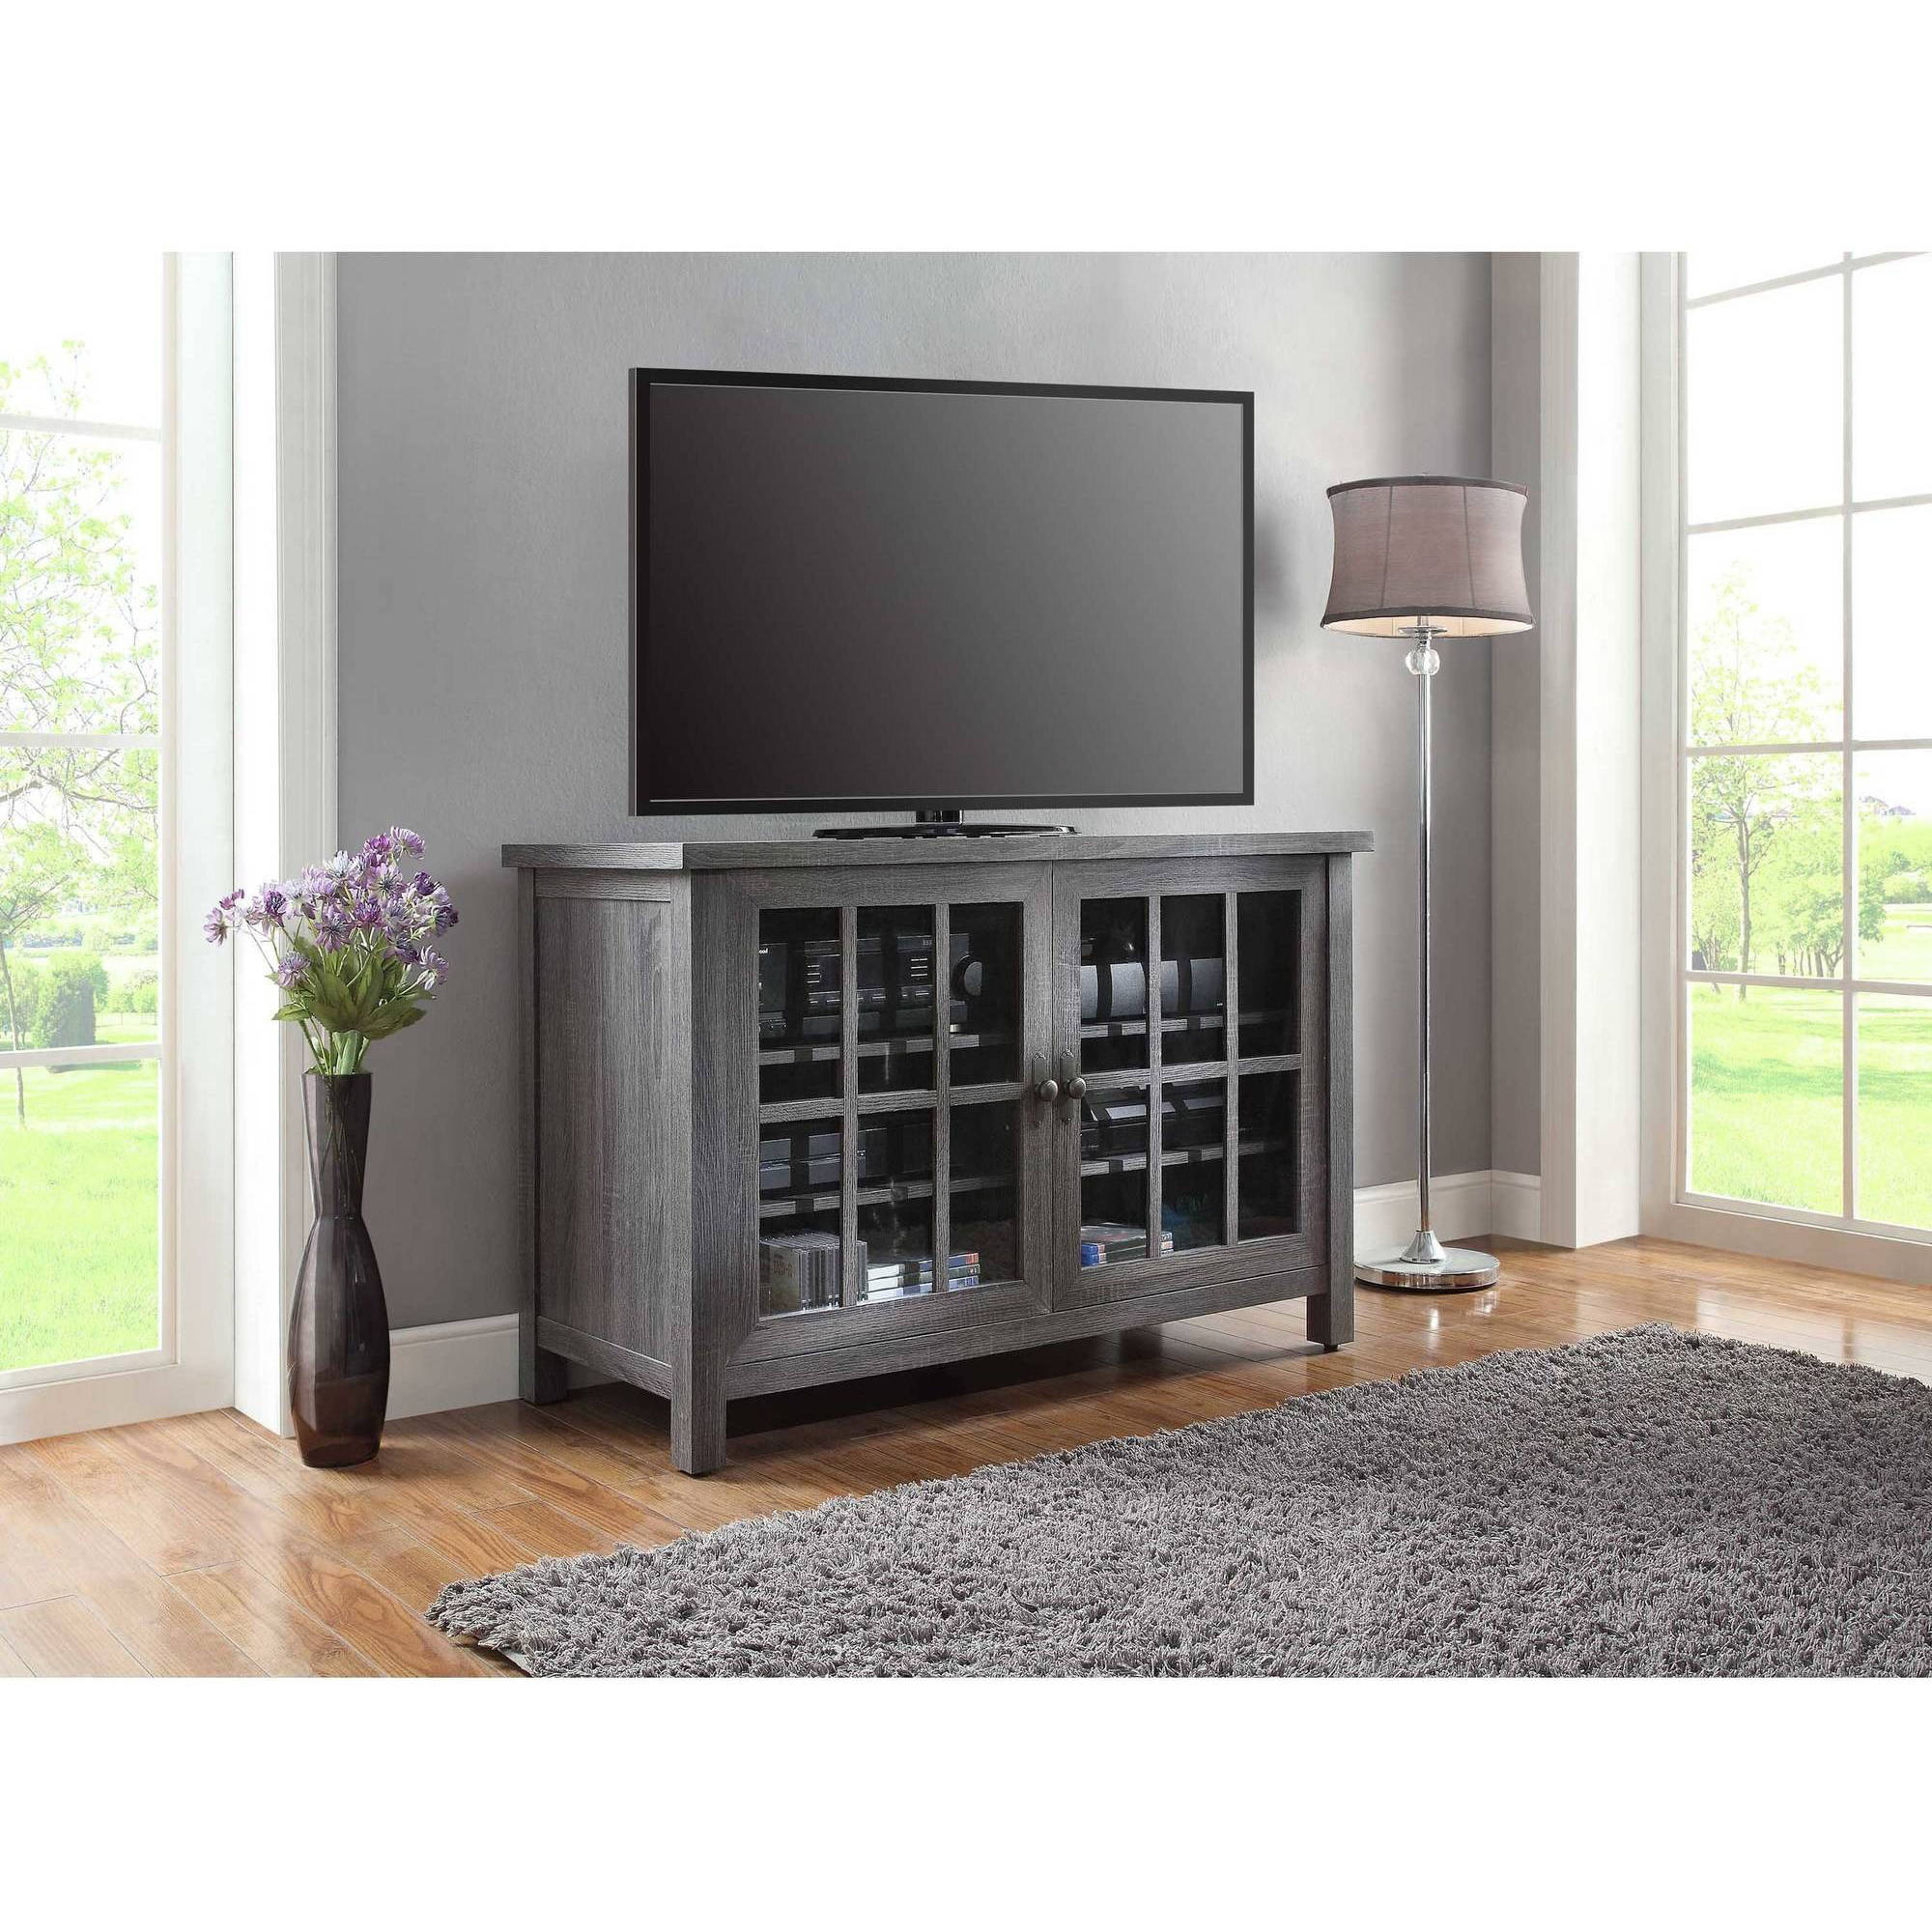 Better Homes And Gardens Oxford Square Tv Console For Tvs Up To 55 intended for Oxford 70 Inch Tv Stands (Image 5 of 30)